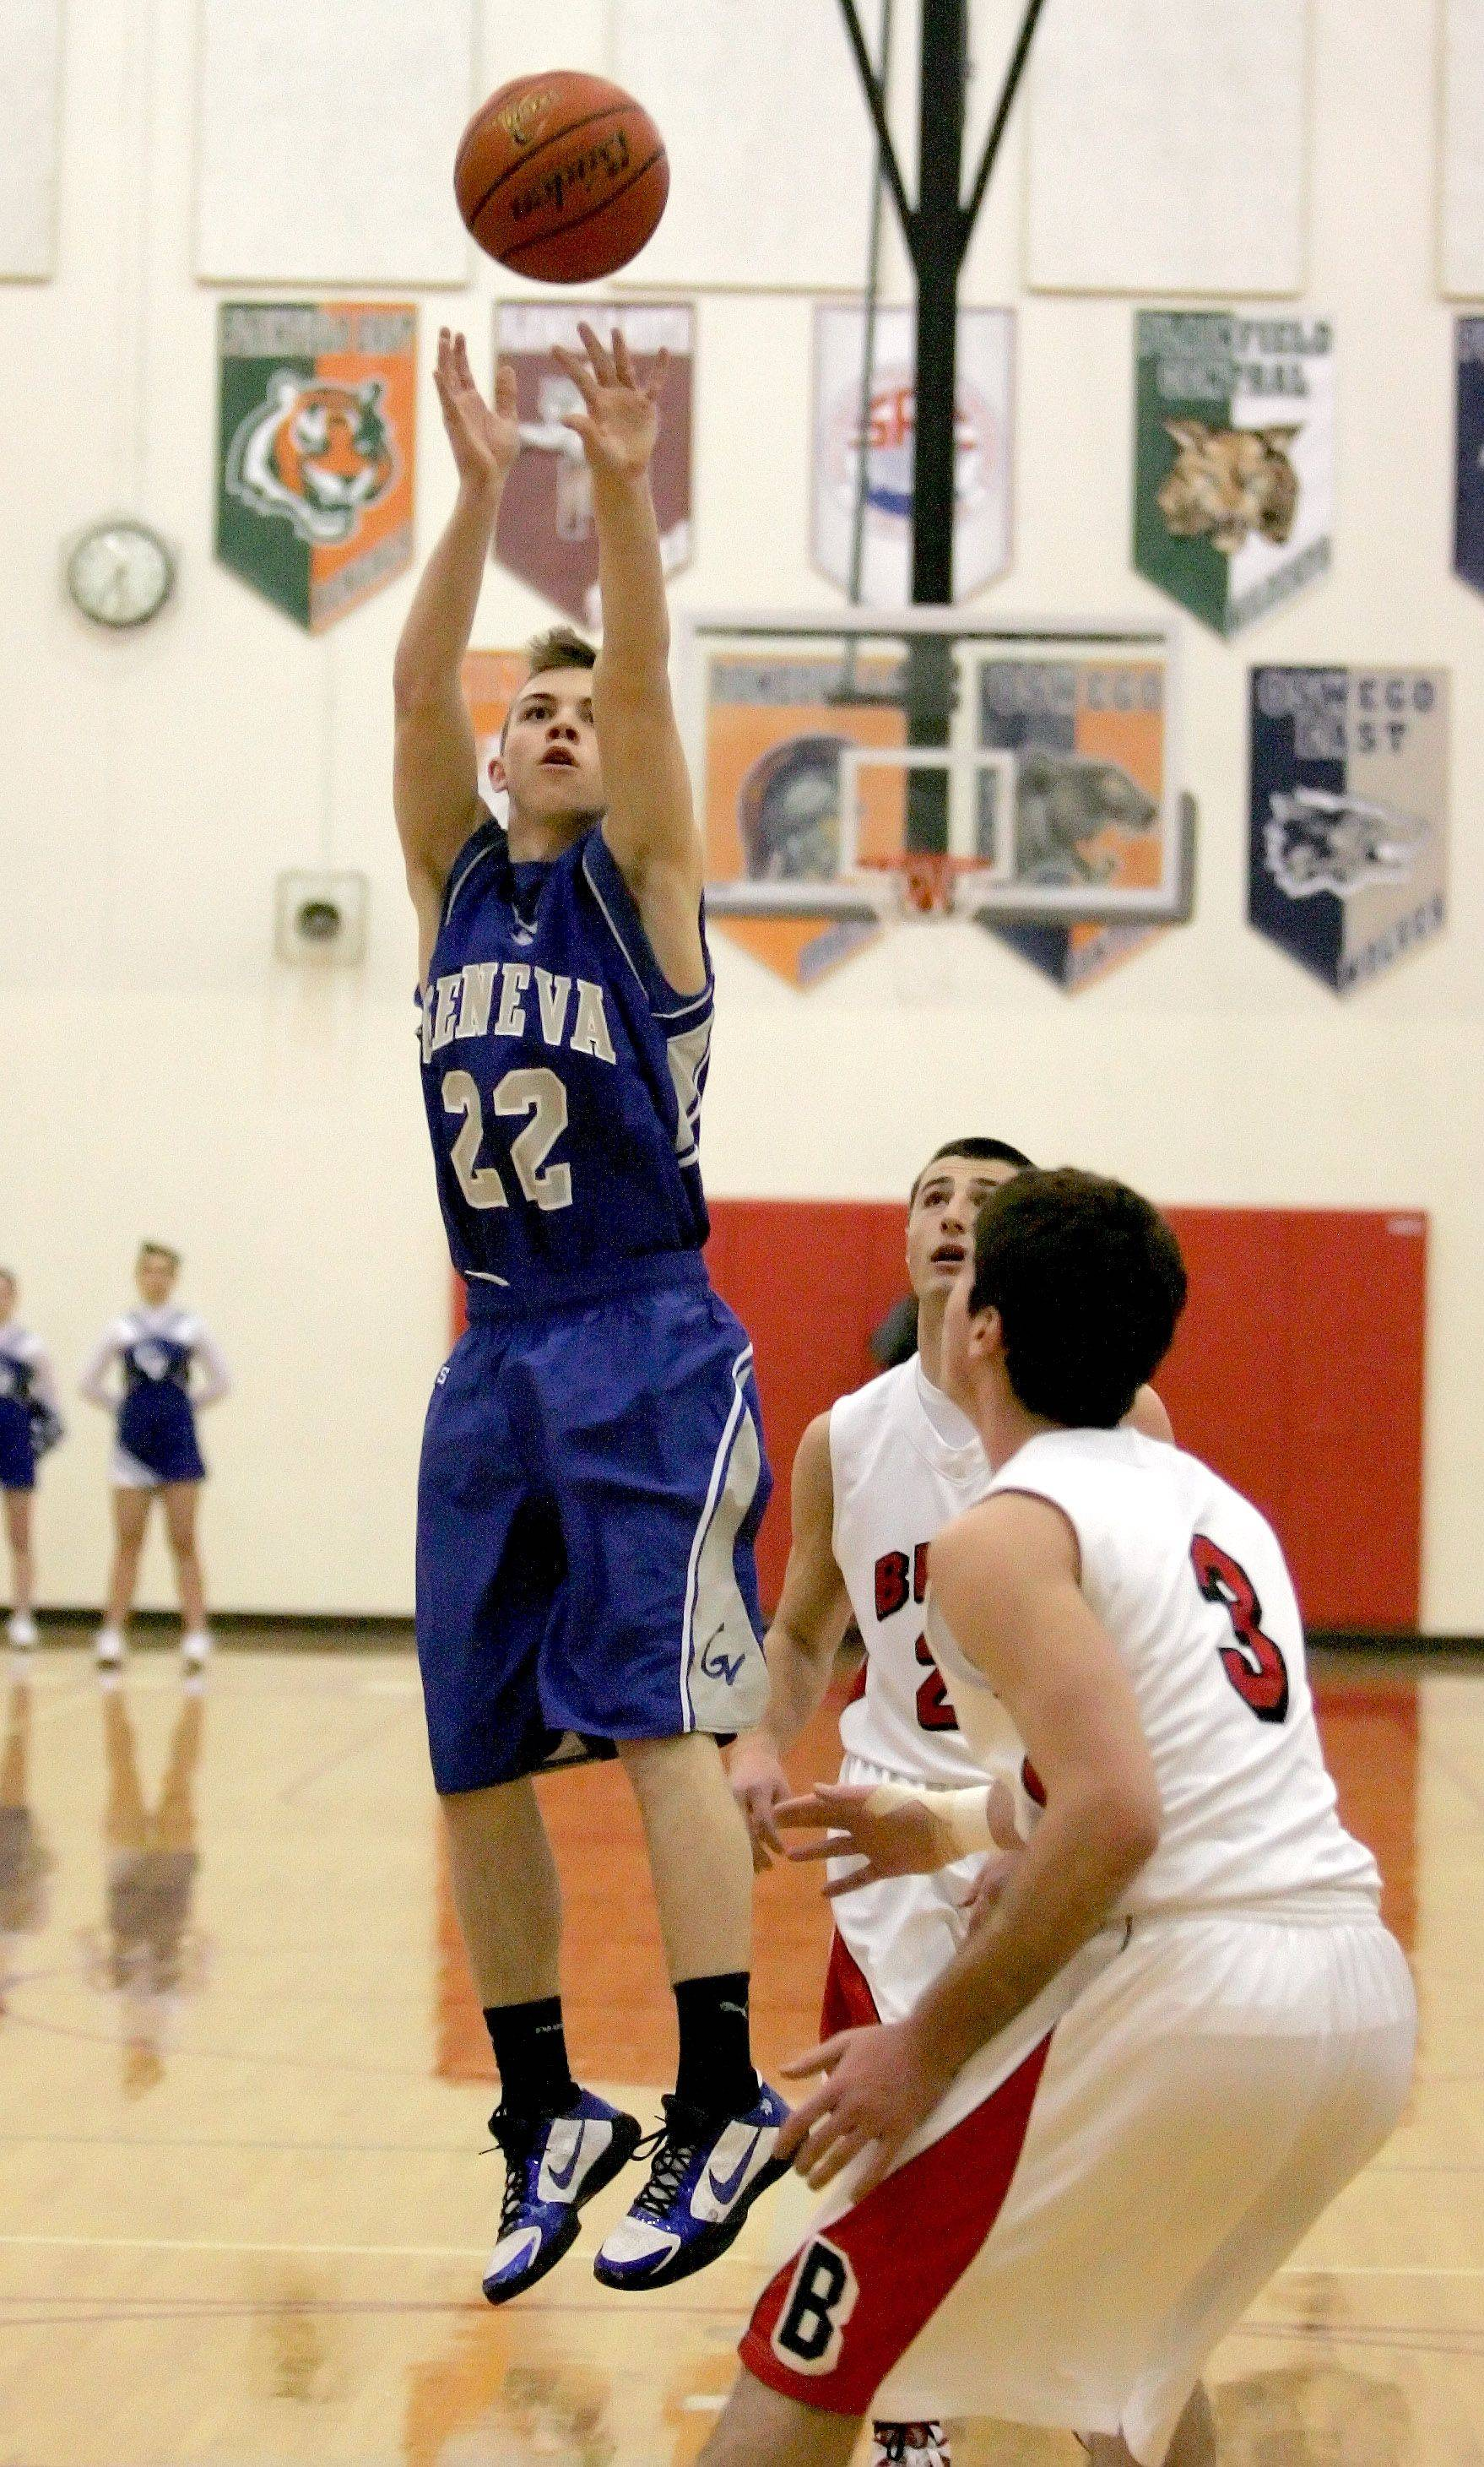 Ryan Willing of Geneva goes up for a shot in action against Benet during boys basketball at the Plainfield North Hoiday Tournament on Friday.